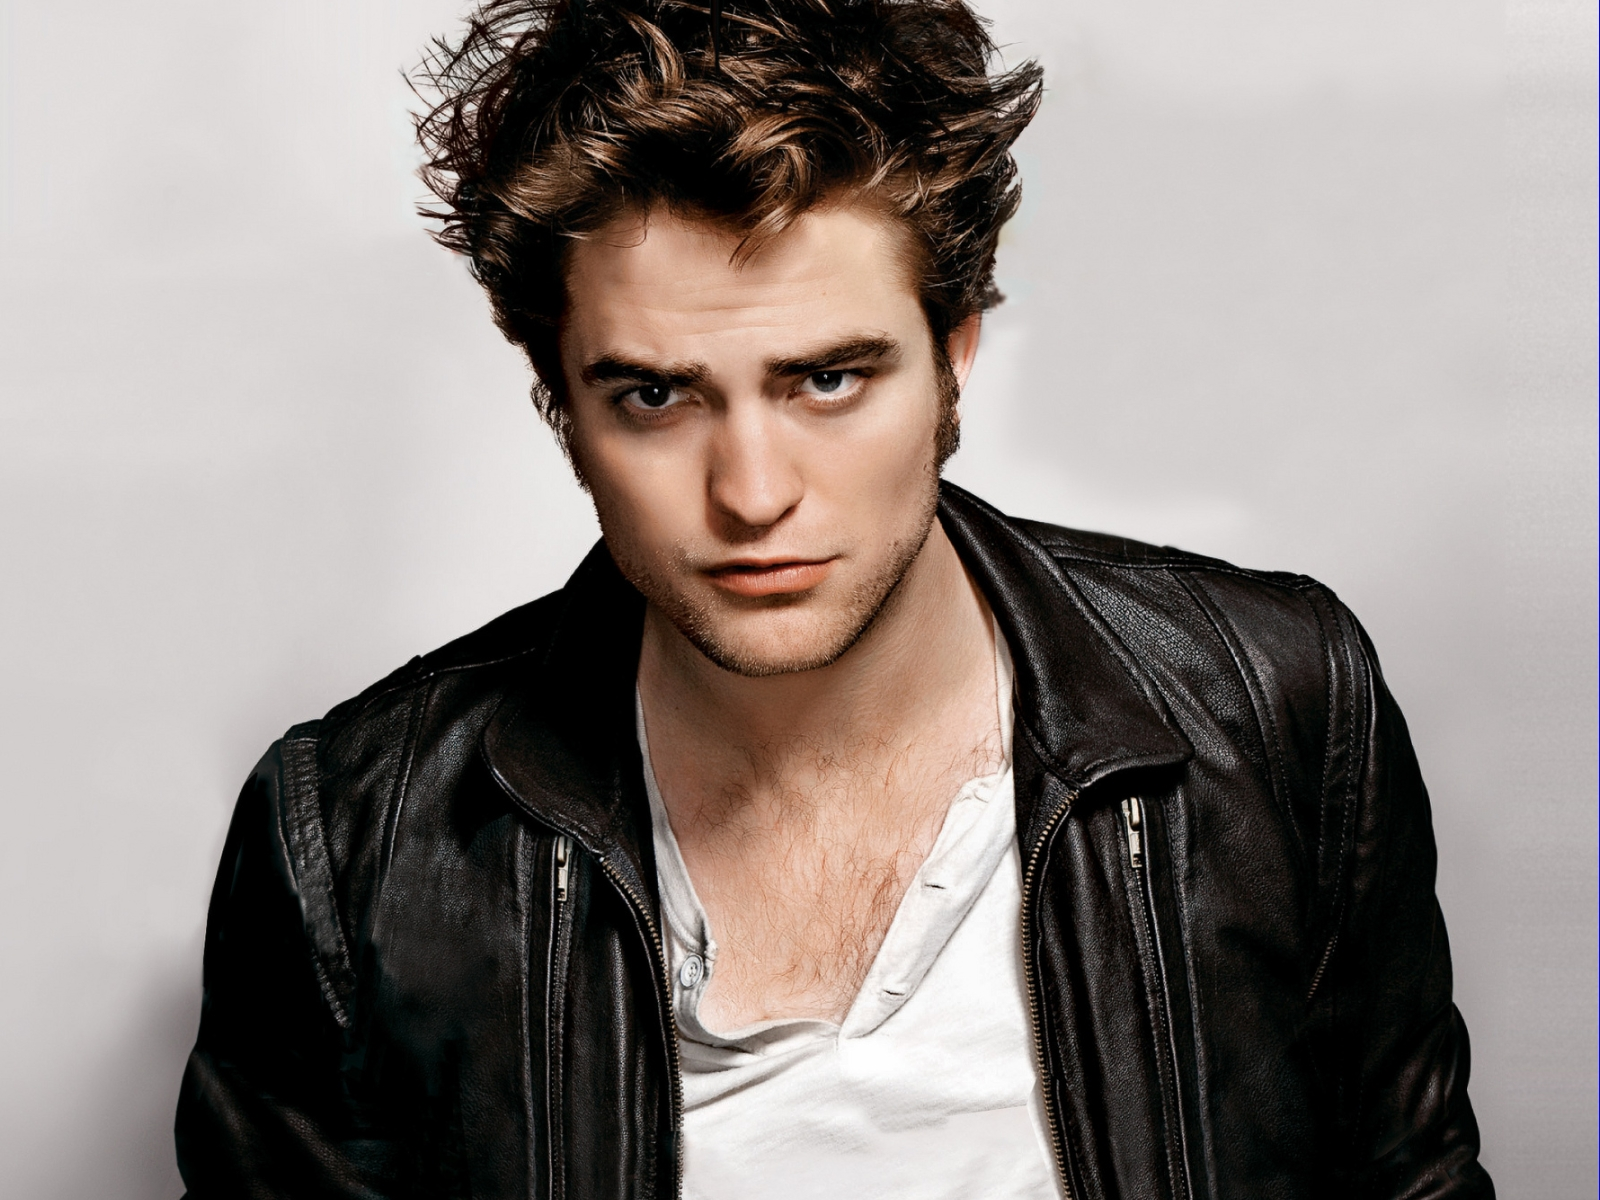 http://3.bp.blogspot.com/-s6AKyJ0-8kU/T7AECq9uYZI/AAAAAAAA49Q/tMCkjAMuO50/s1600/robert-pattinson-photo-41183.jpg